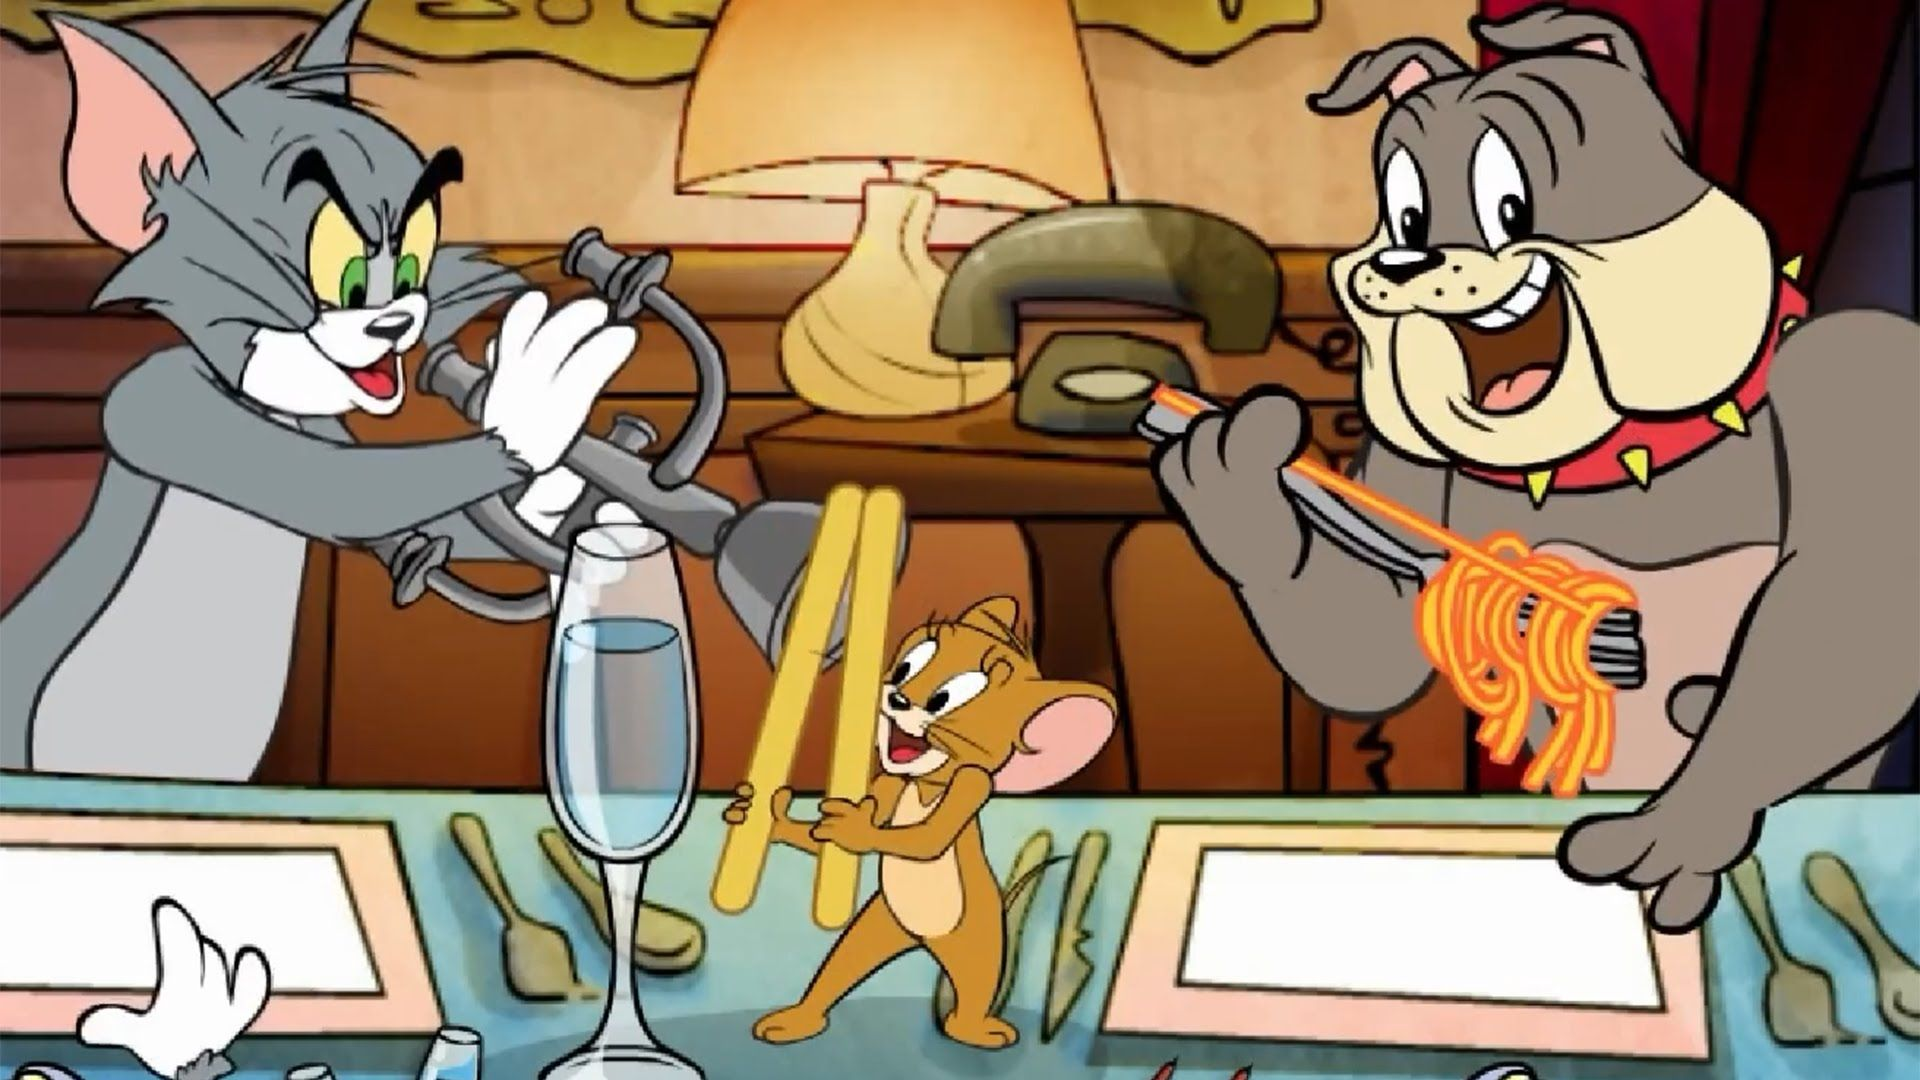 Tom And Jerry Movie Game Suppertime Serenade Episode Online Cartoon Games Tom And Jerry Movies Tom And Jerry Wallpapers Online Cartoons